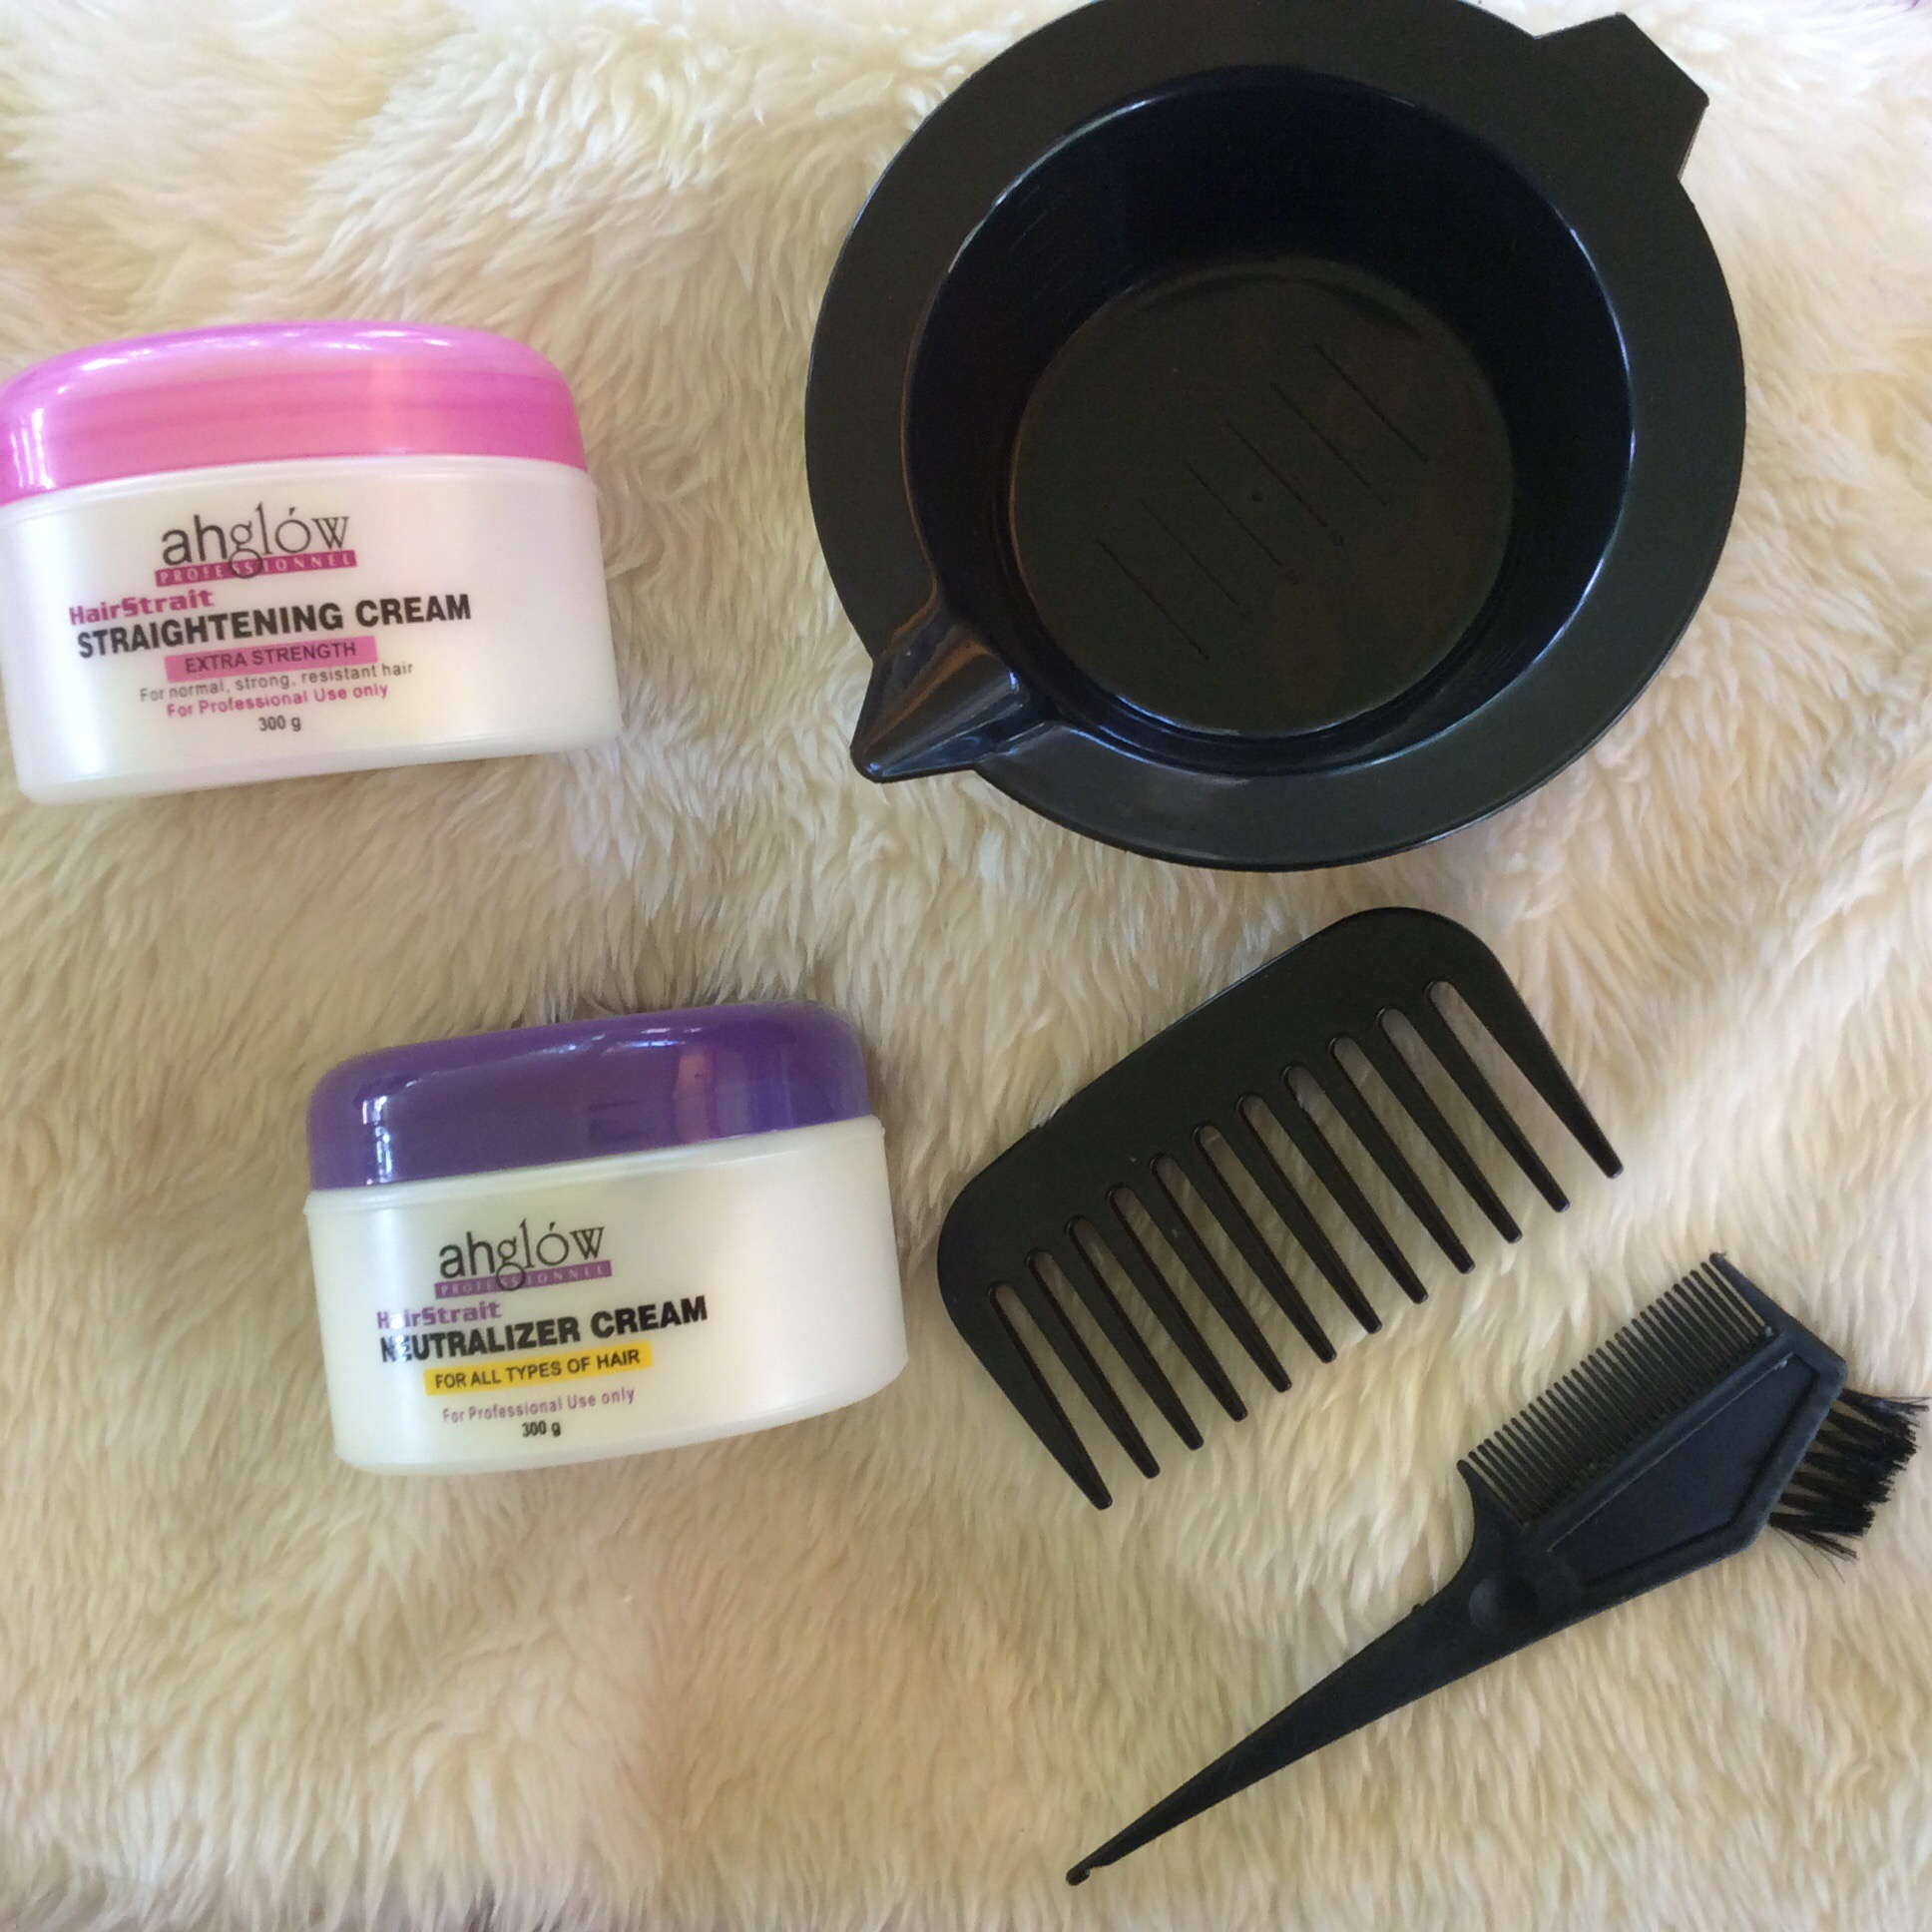 Matrix hair brush 4 -  The Hairstrait Rebonding Products Two Ceramic Flat Irons Accessories Like Gloves Bowl Tinting Brush With Comb Wide Toothed Comb And Hair Clips